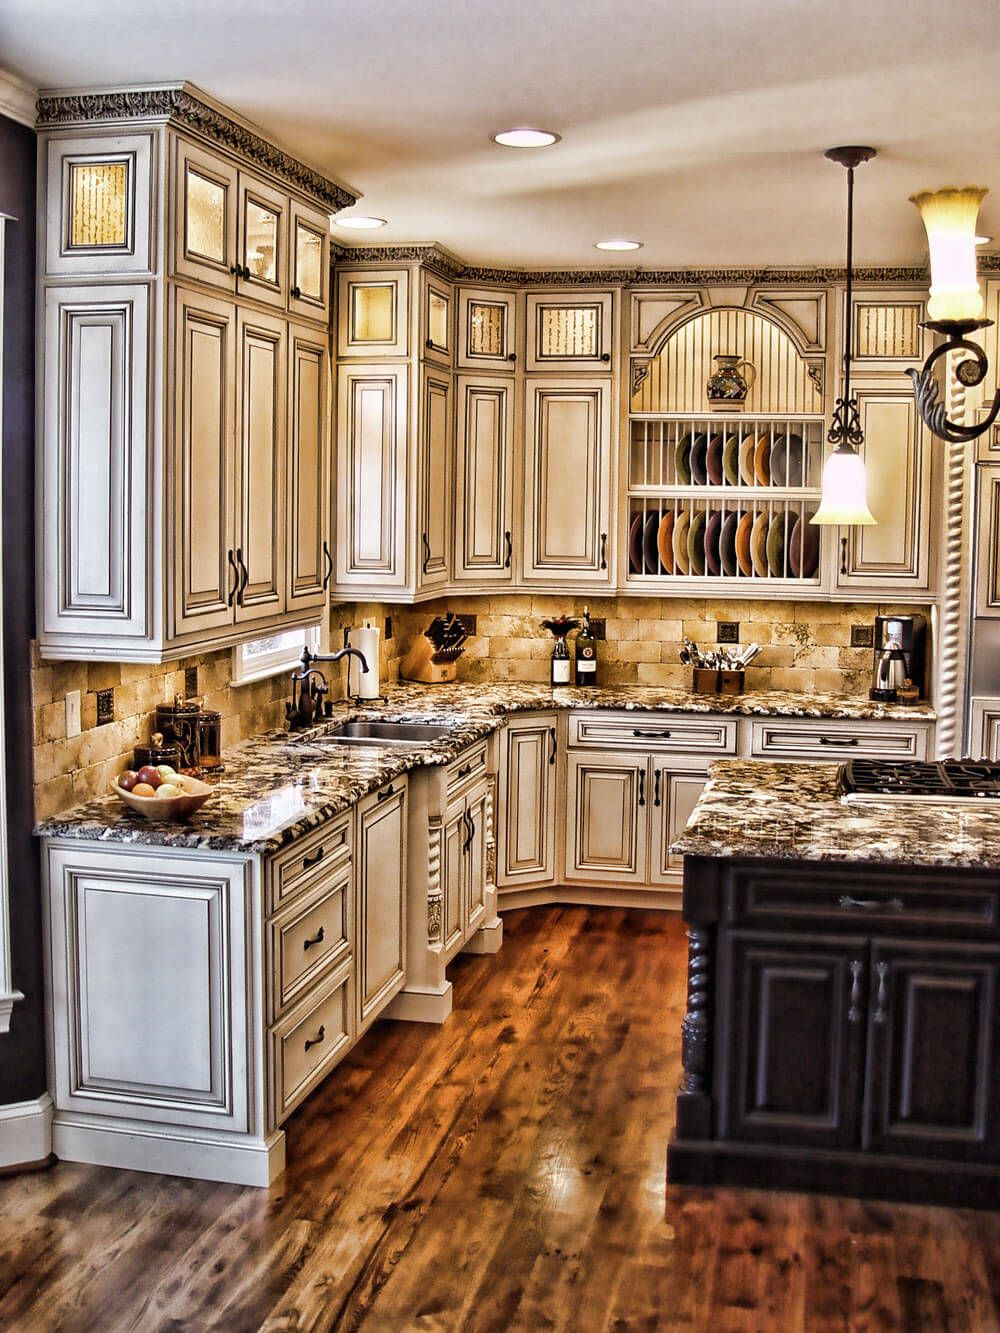 27 Cabinets For The Rustic Kitchen Of Your Dreams Antique White Kitchen Rustic Kitchen Cabinets Antique White Kitchen Cabinets